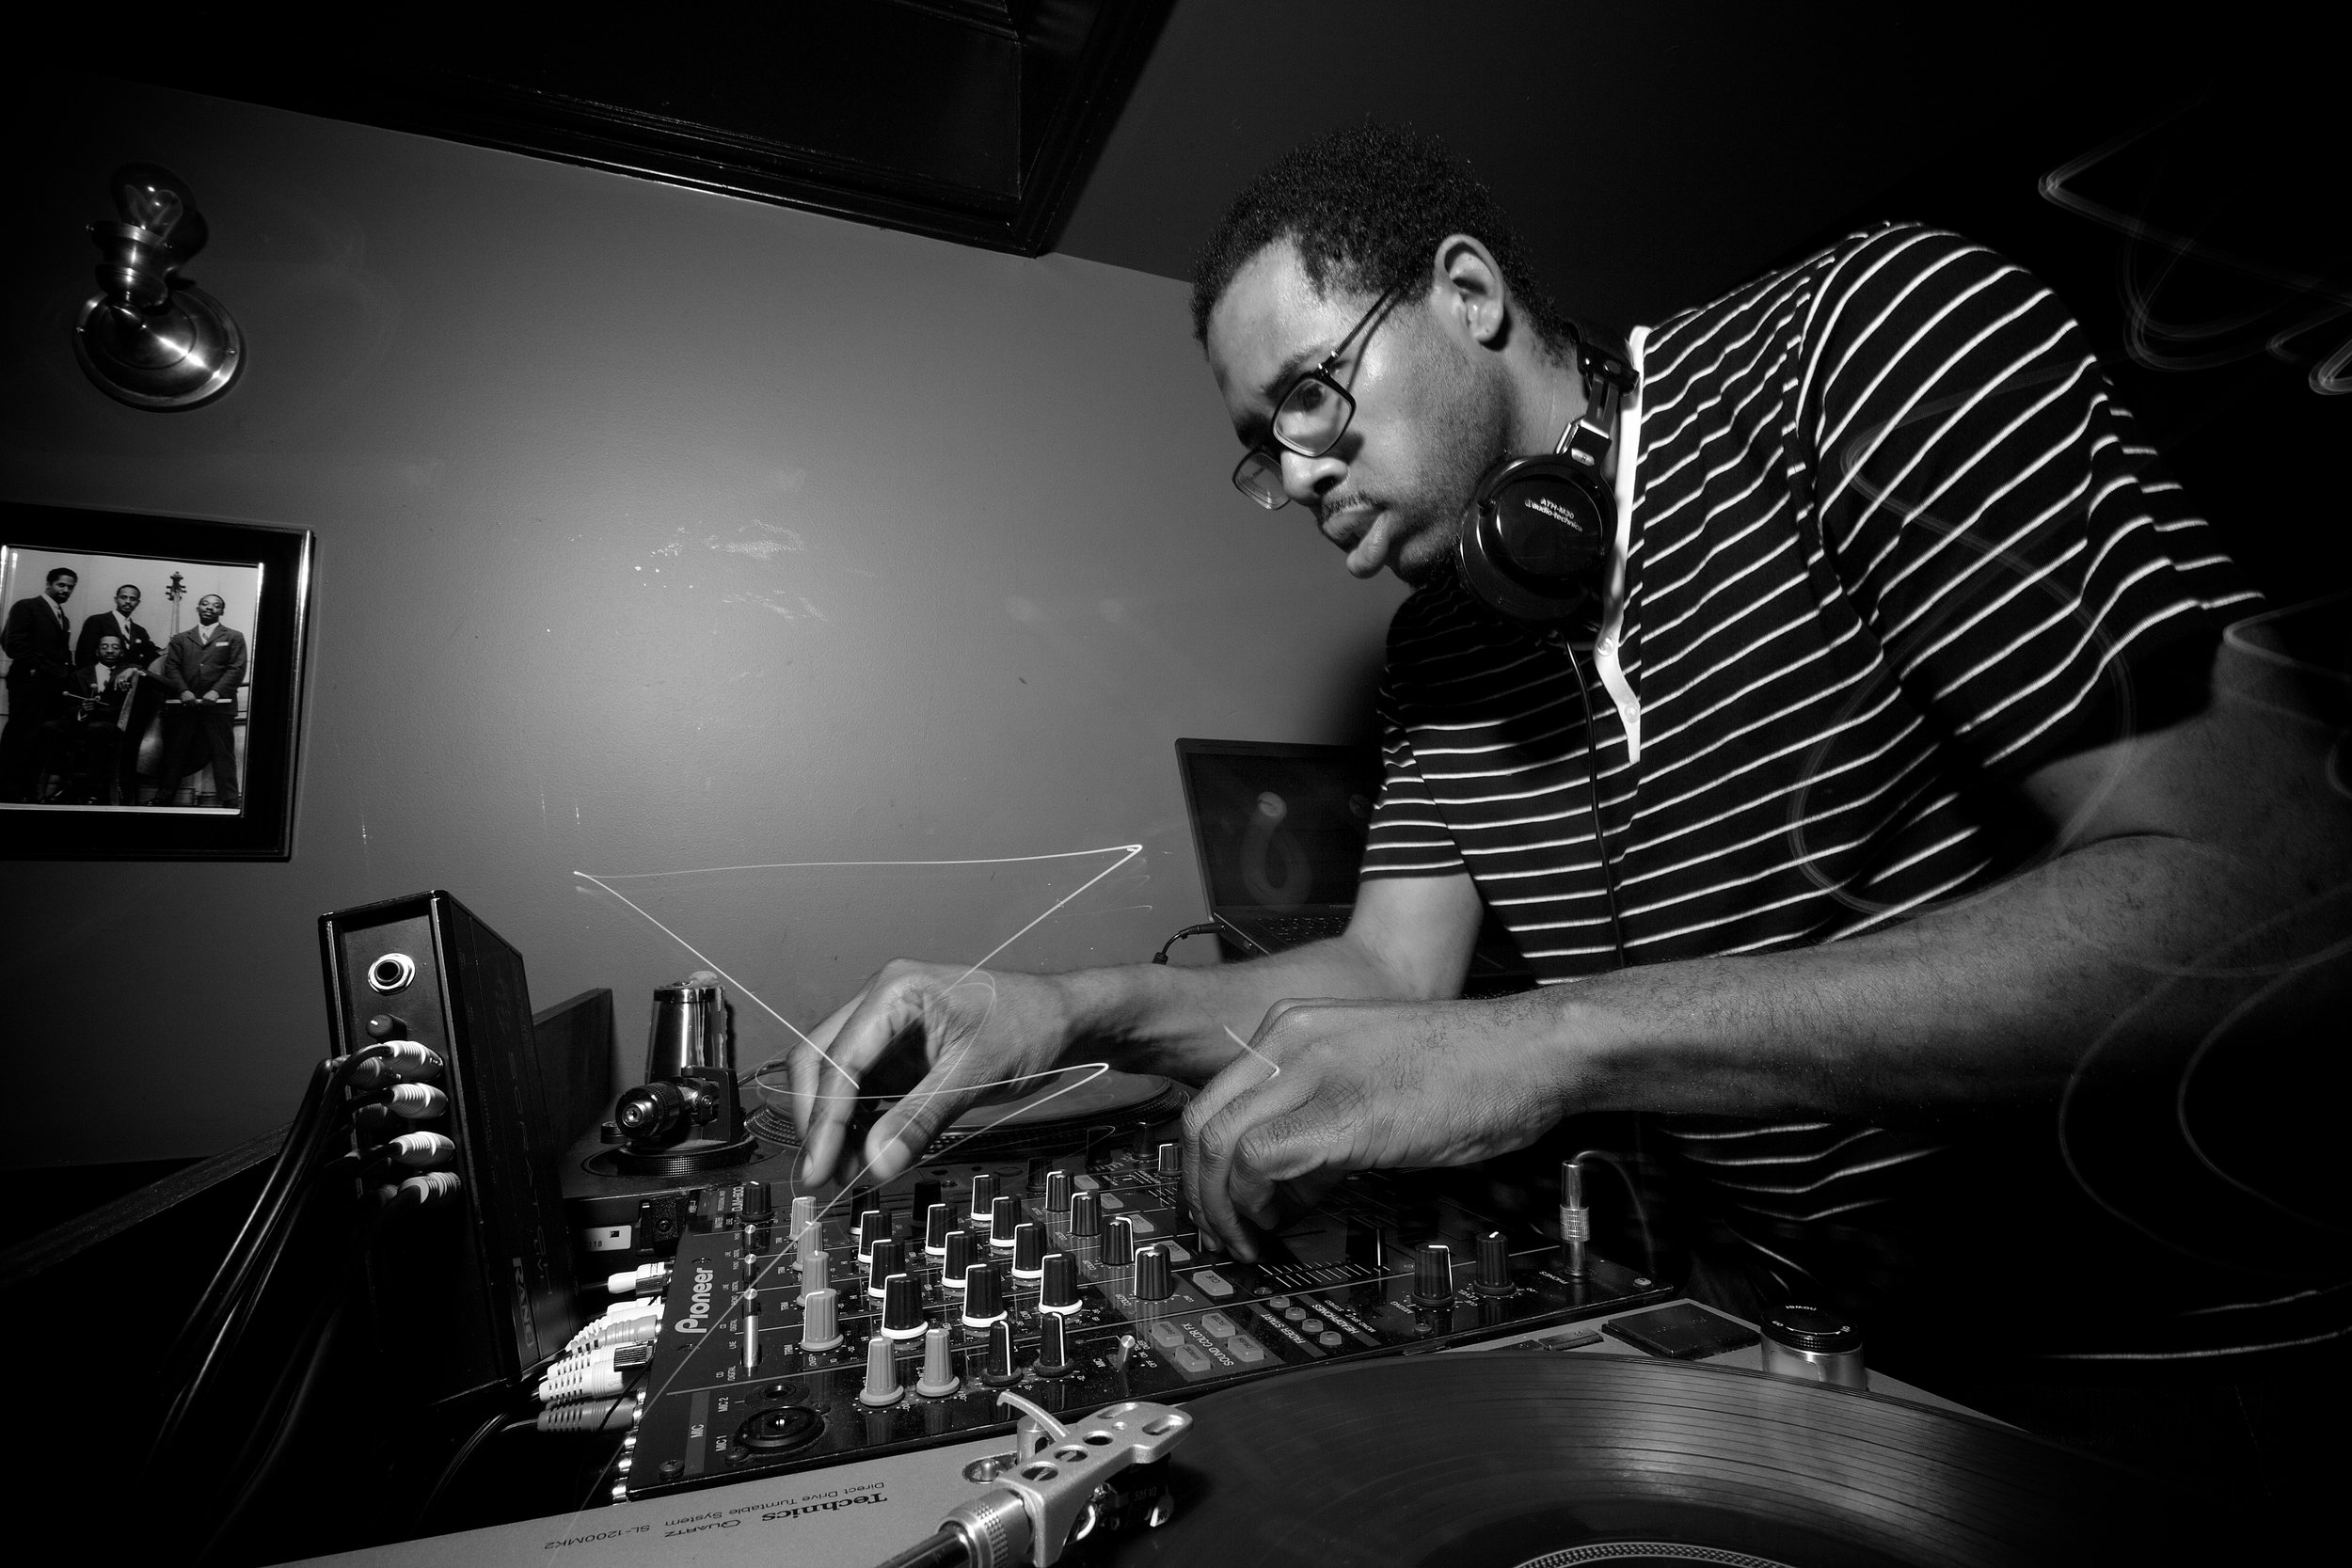 """- Here's a little story...A native of Washington, DC, Jahsonic has been moving crowds at his weekly Monday night party - The Main Ingredient at Marvin since 2007.Before that, he got his start playing neighborhood house parties at the age of 11. His first paying gigs were residencies at the Blue Room, JIN Lounge and as one of the founding On-Air hosts and mixologists on 89.3 WPFWs 'Decipher' hip-hop hour.He was also a national finalist in the 2011 Red Bull """"ThreeStyle"""" DJ competition in Las Vegas and recently played AfroPunk in Brooklyn.Jahsonic is also the creator and curator of the monthly """"Axel F"""" party, where he plays the finest in classic champagne soul, funk, disco and lazer boogie for appreciative crowds and of """"Behind The Line"""" where he pushes the boundaries of what's possible in music with a focus on timeless sounds."""